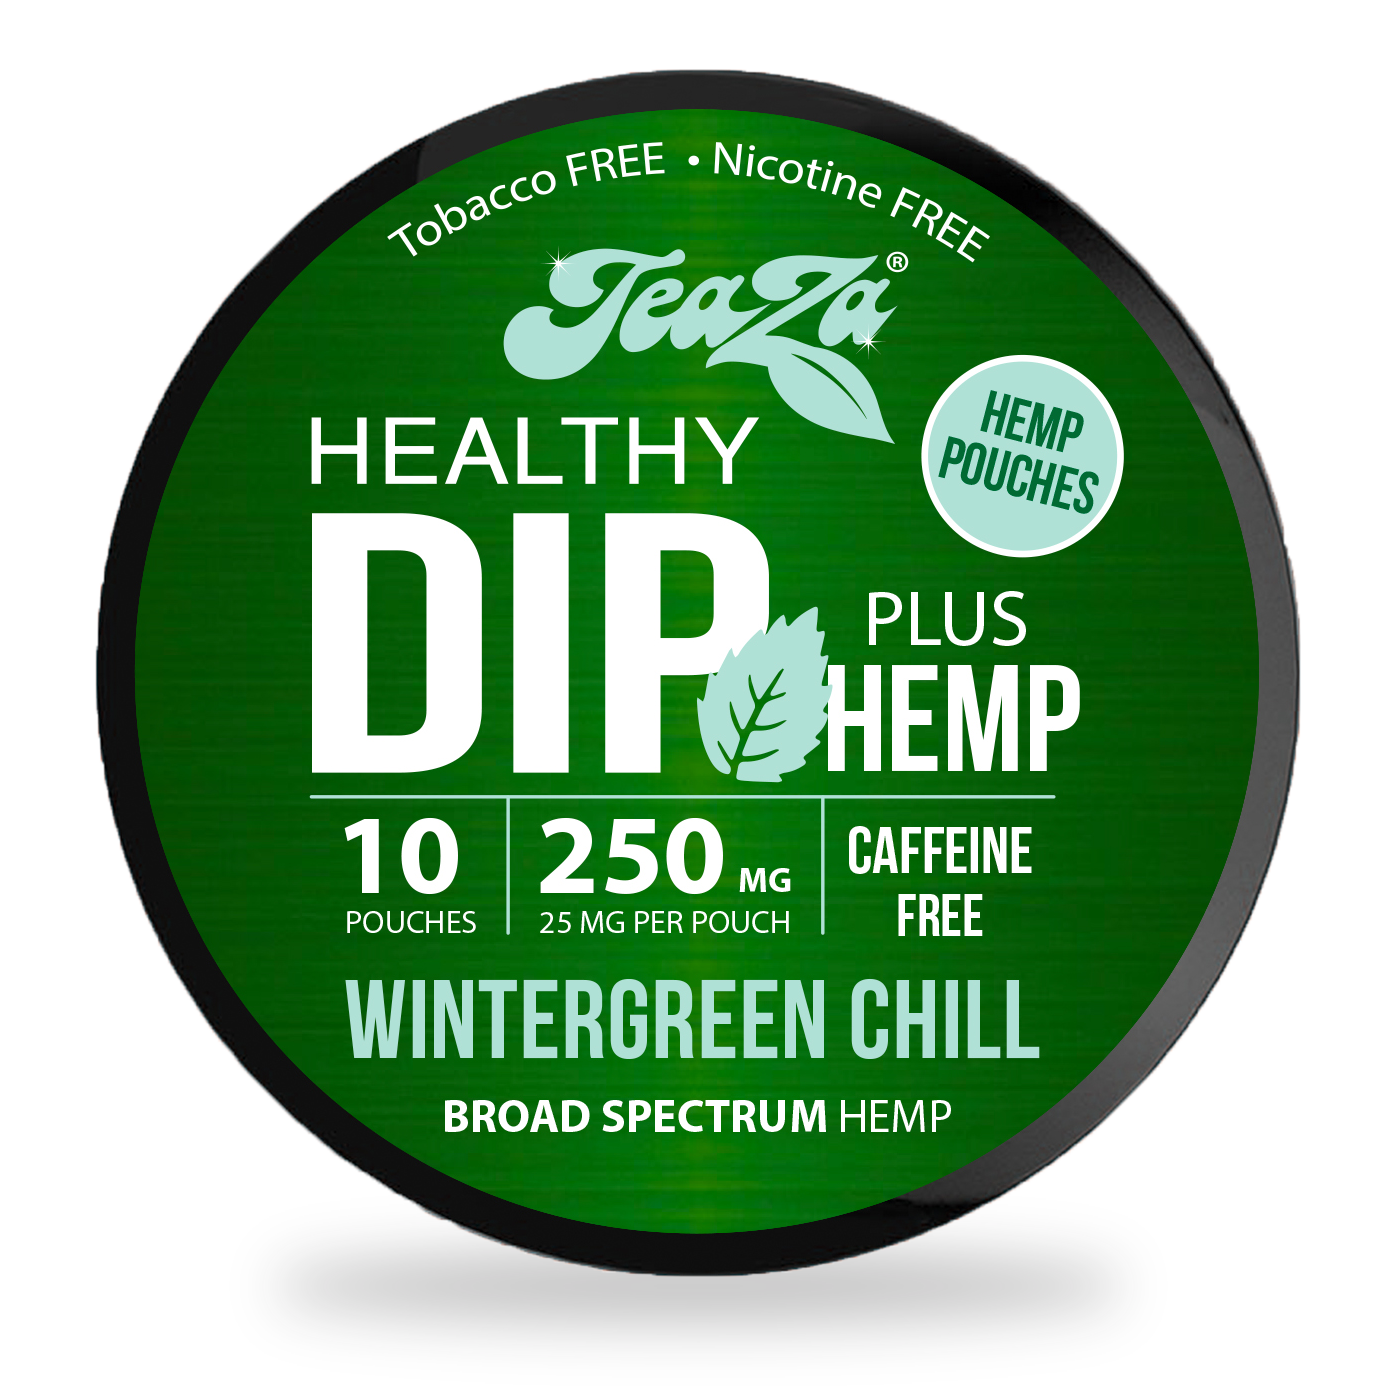 Wintergreen Chill Hemp Dip Pouches